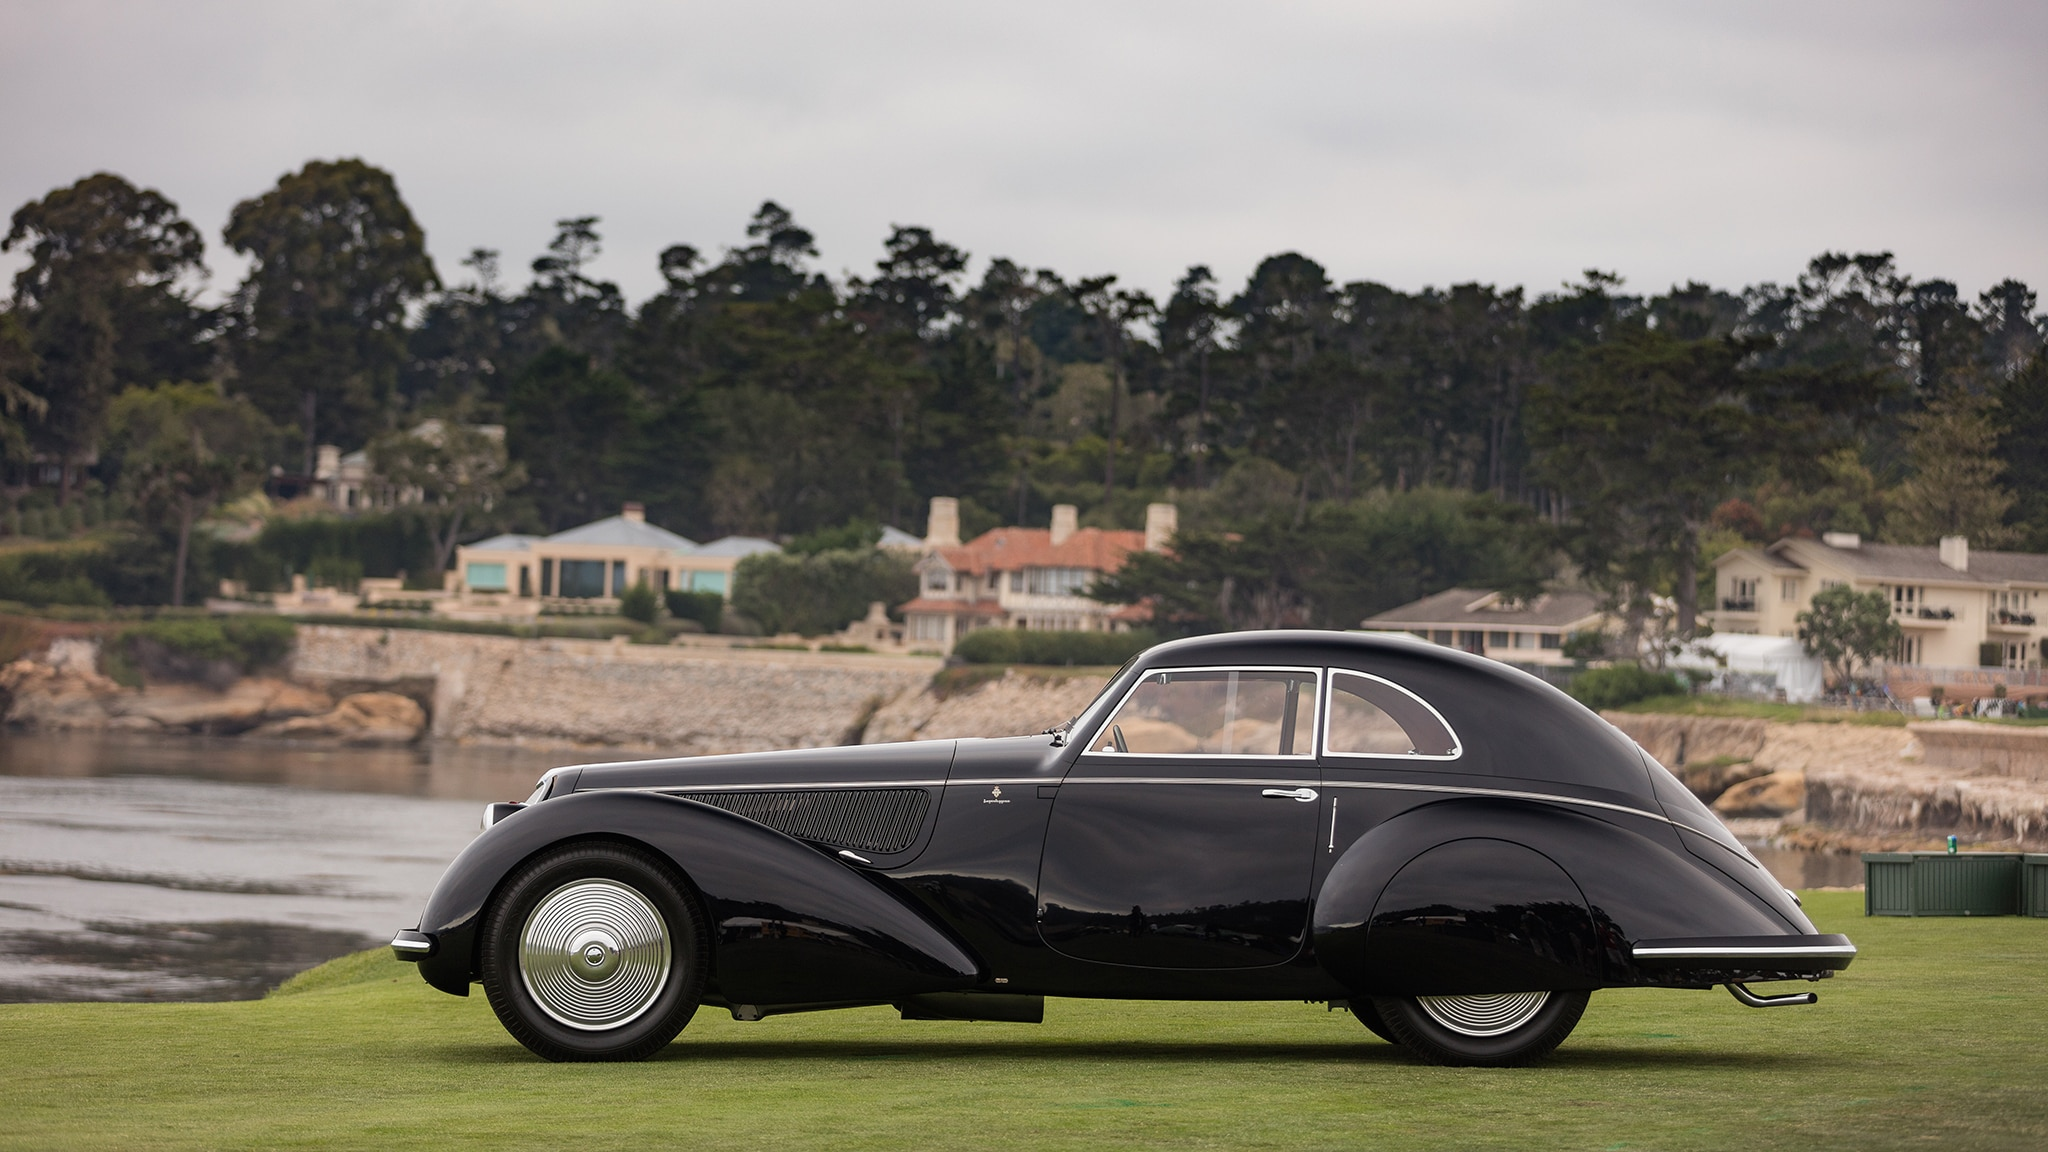 by design 1937 alfa romeo 8c 2900b touring berlinetta coupe